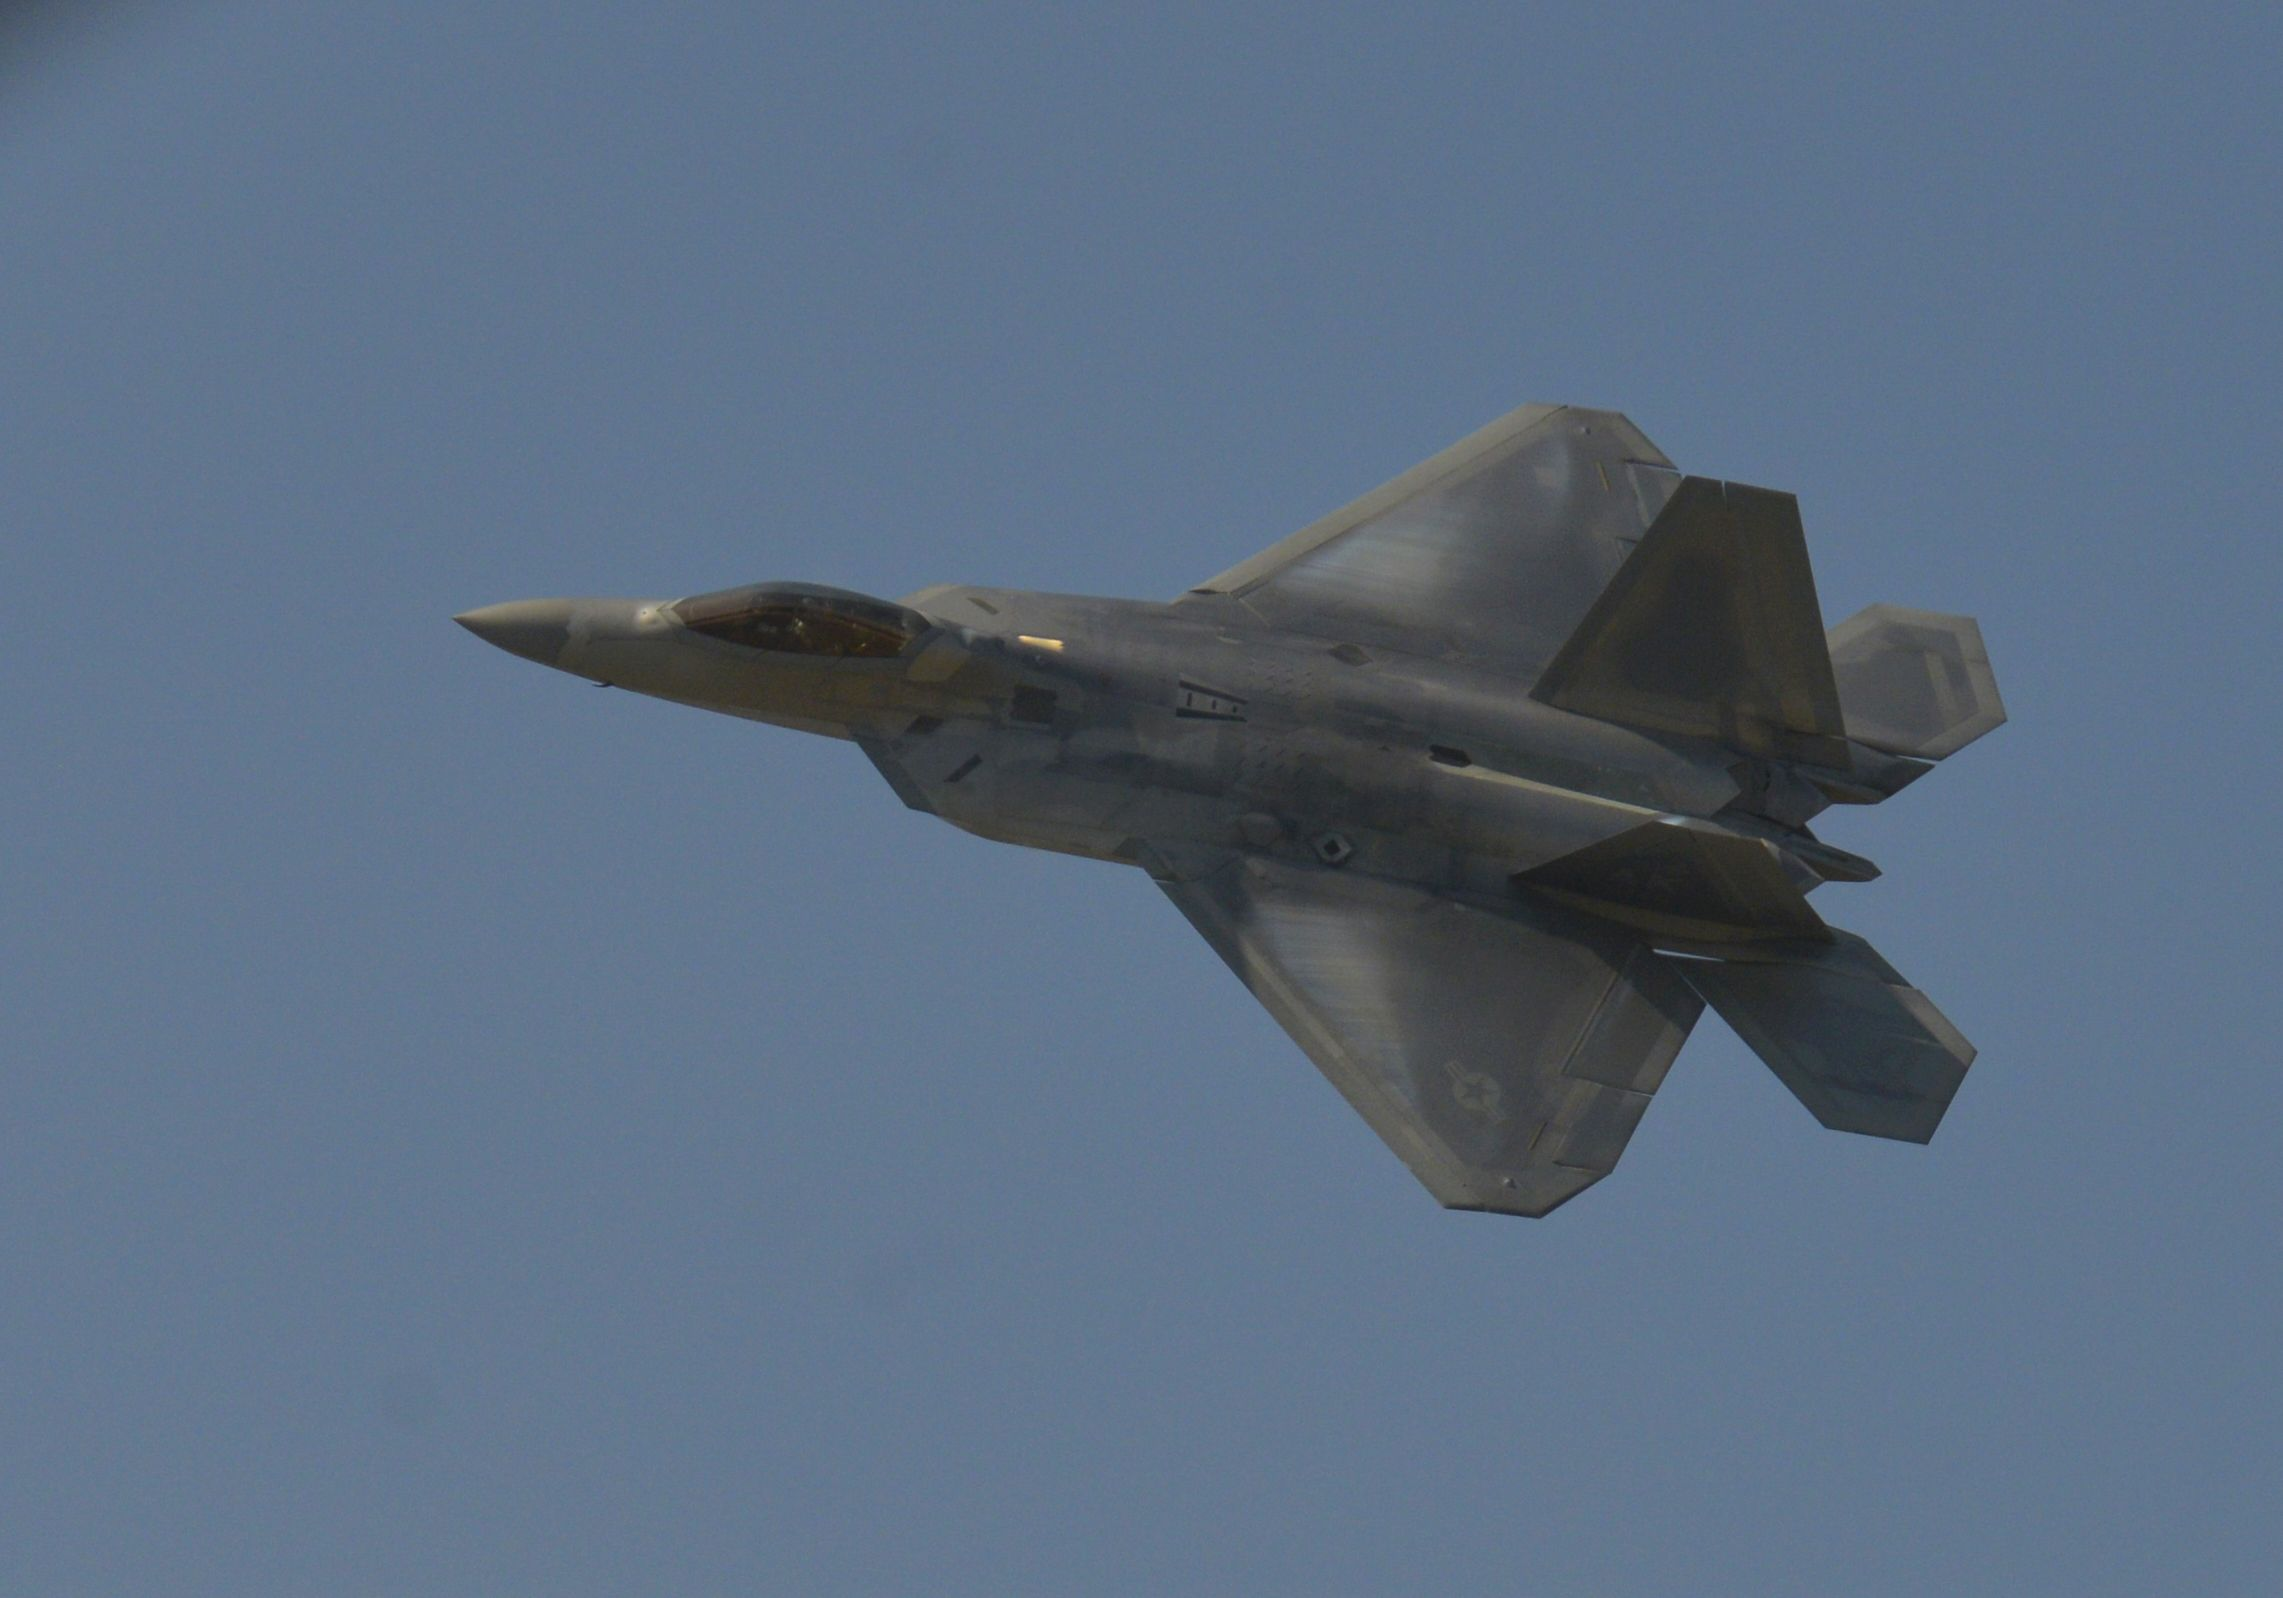 An F-22 Just Blew Up a Drug Lab During Its First Combat Mission in Afghanistan